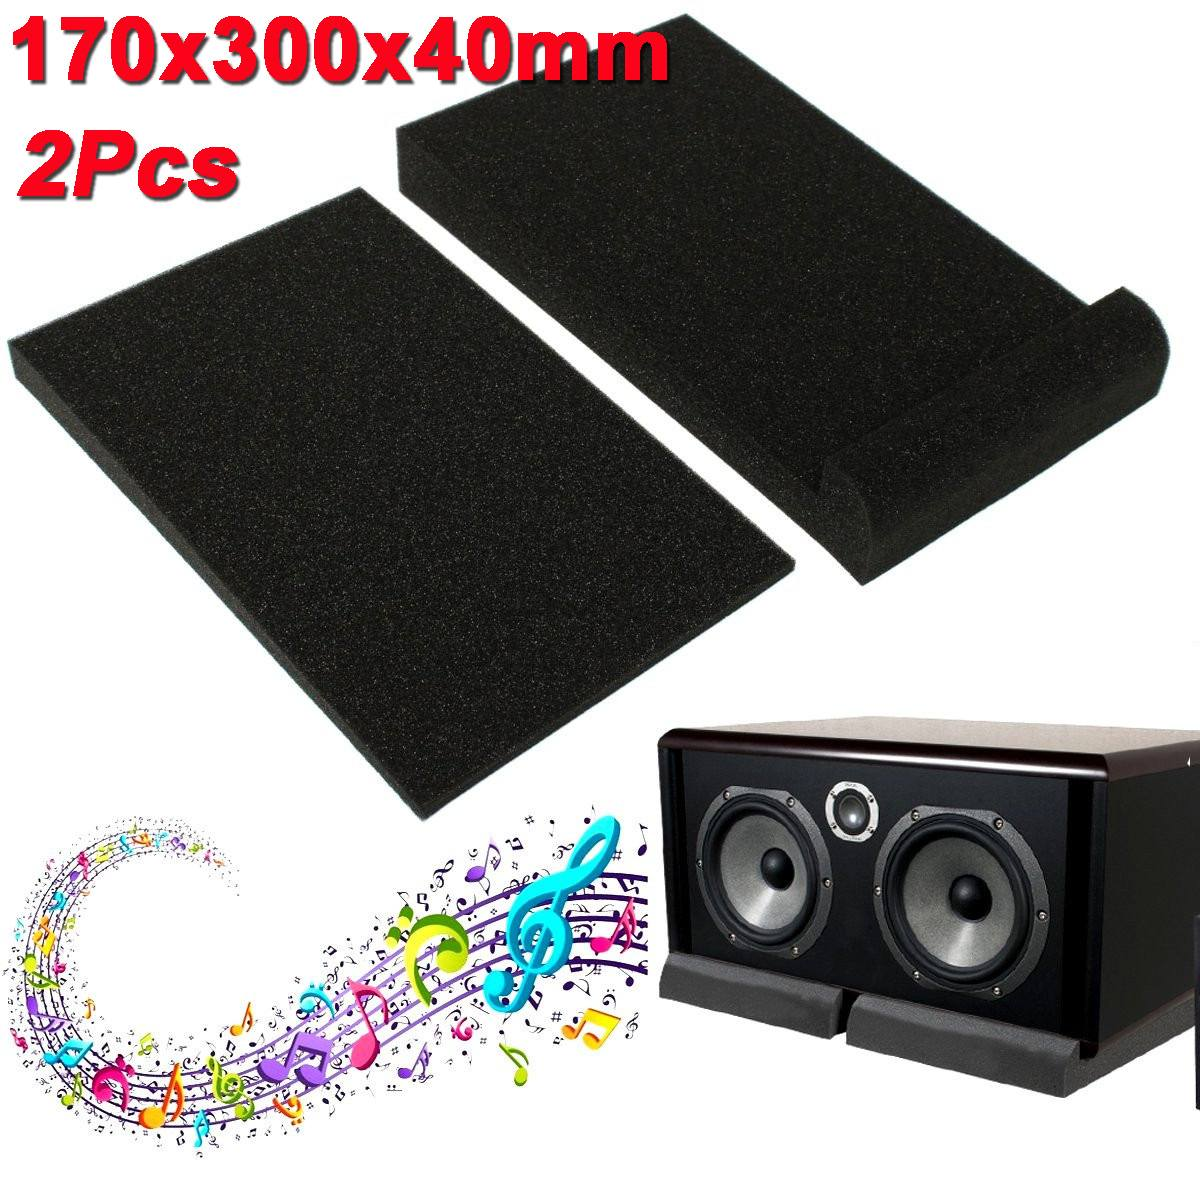 1 Set Isolator Sponge Pad Sponge Studio Monitor Speaker Acoustic Isolation Foam Isolator Pads 30x17x4cm